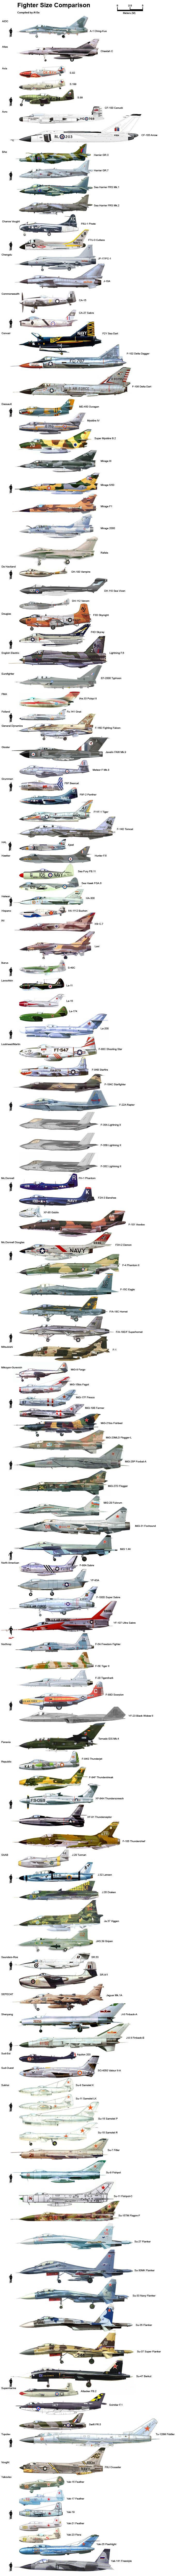 Fighter-Jet-Comparisons